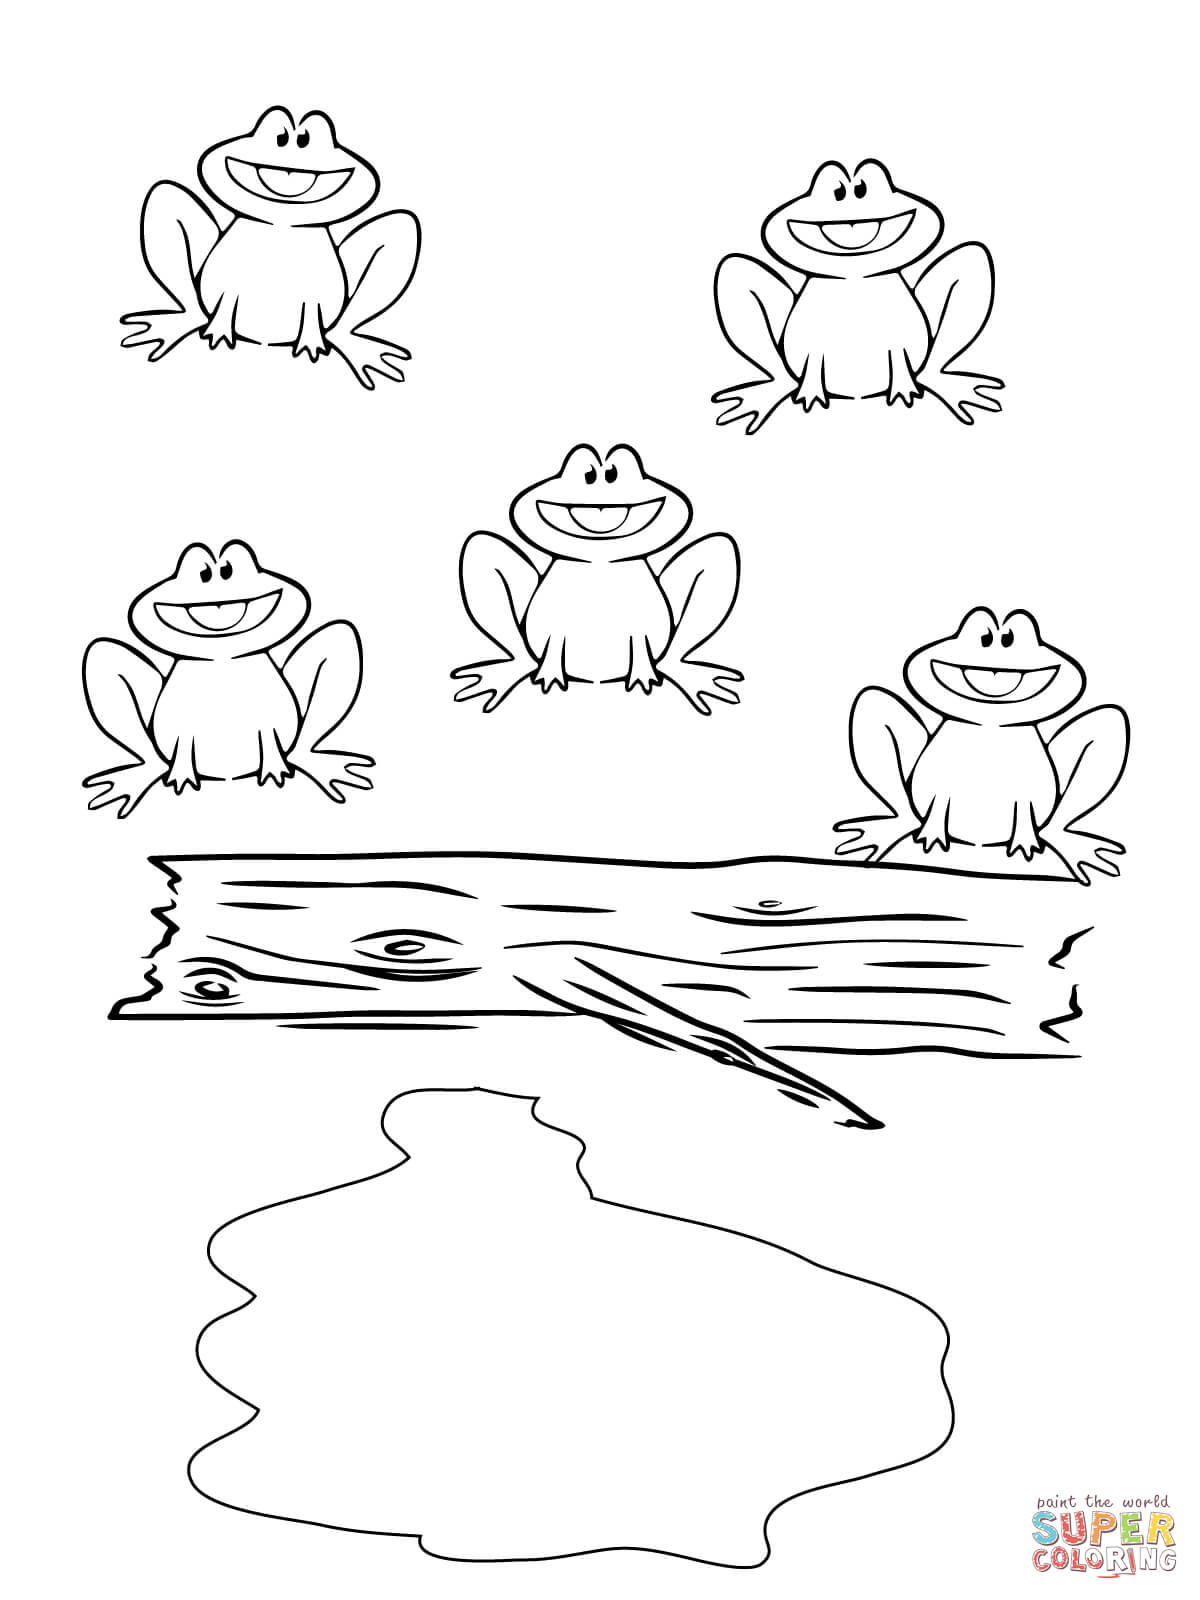 Free Worksheet Frog And Toad Together Worksheets frog and toad coloring pages environmental sheets five little speckled frogs page free printable coloring